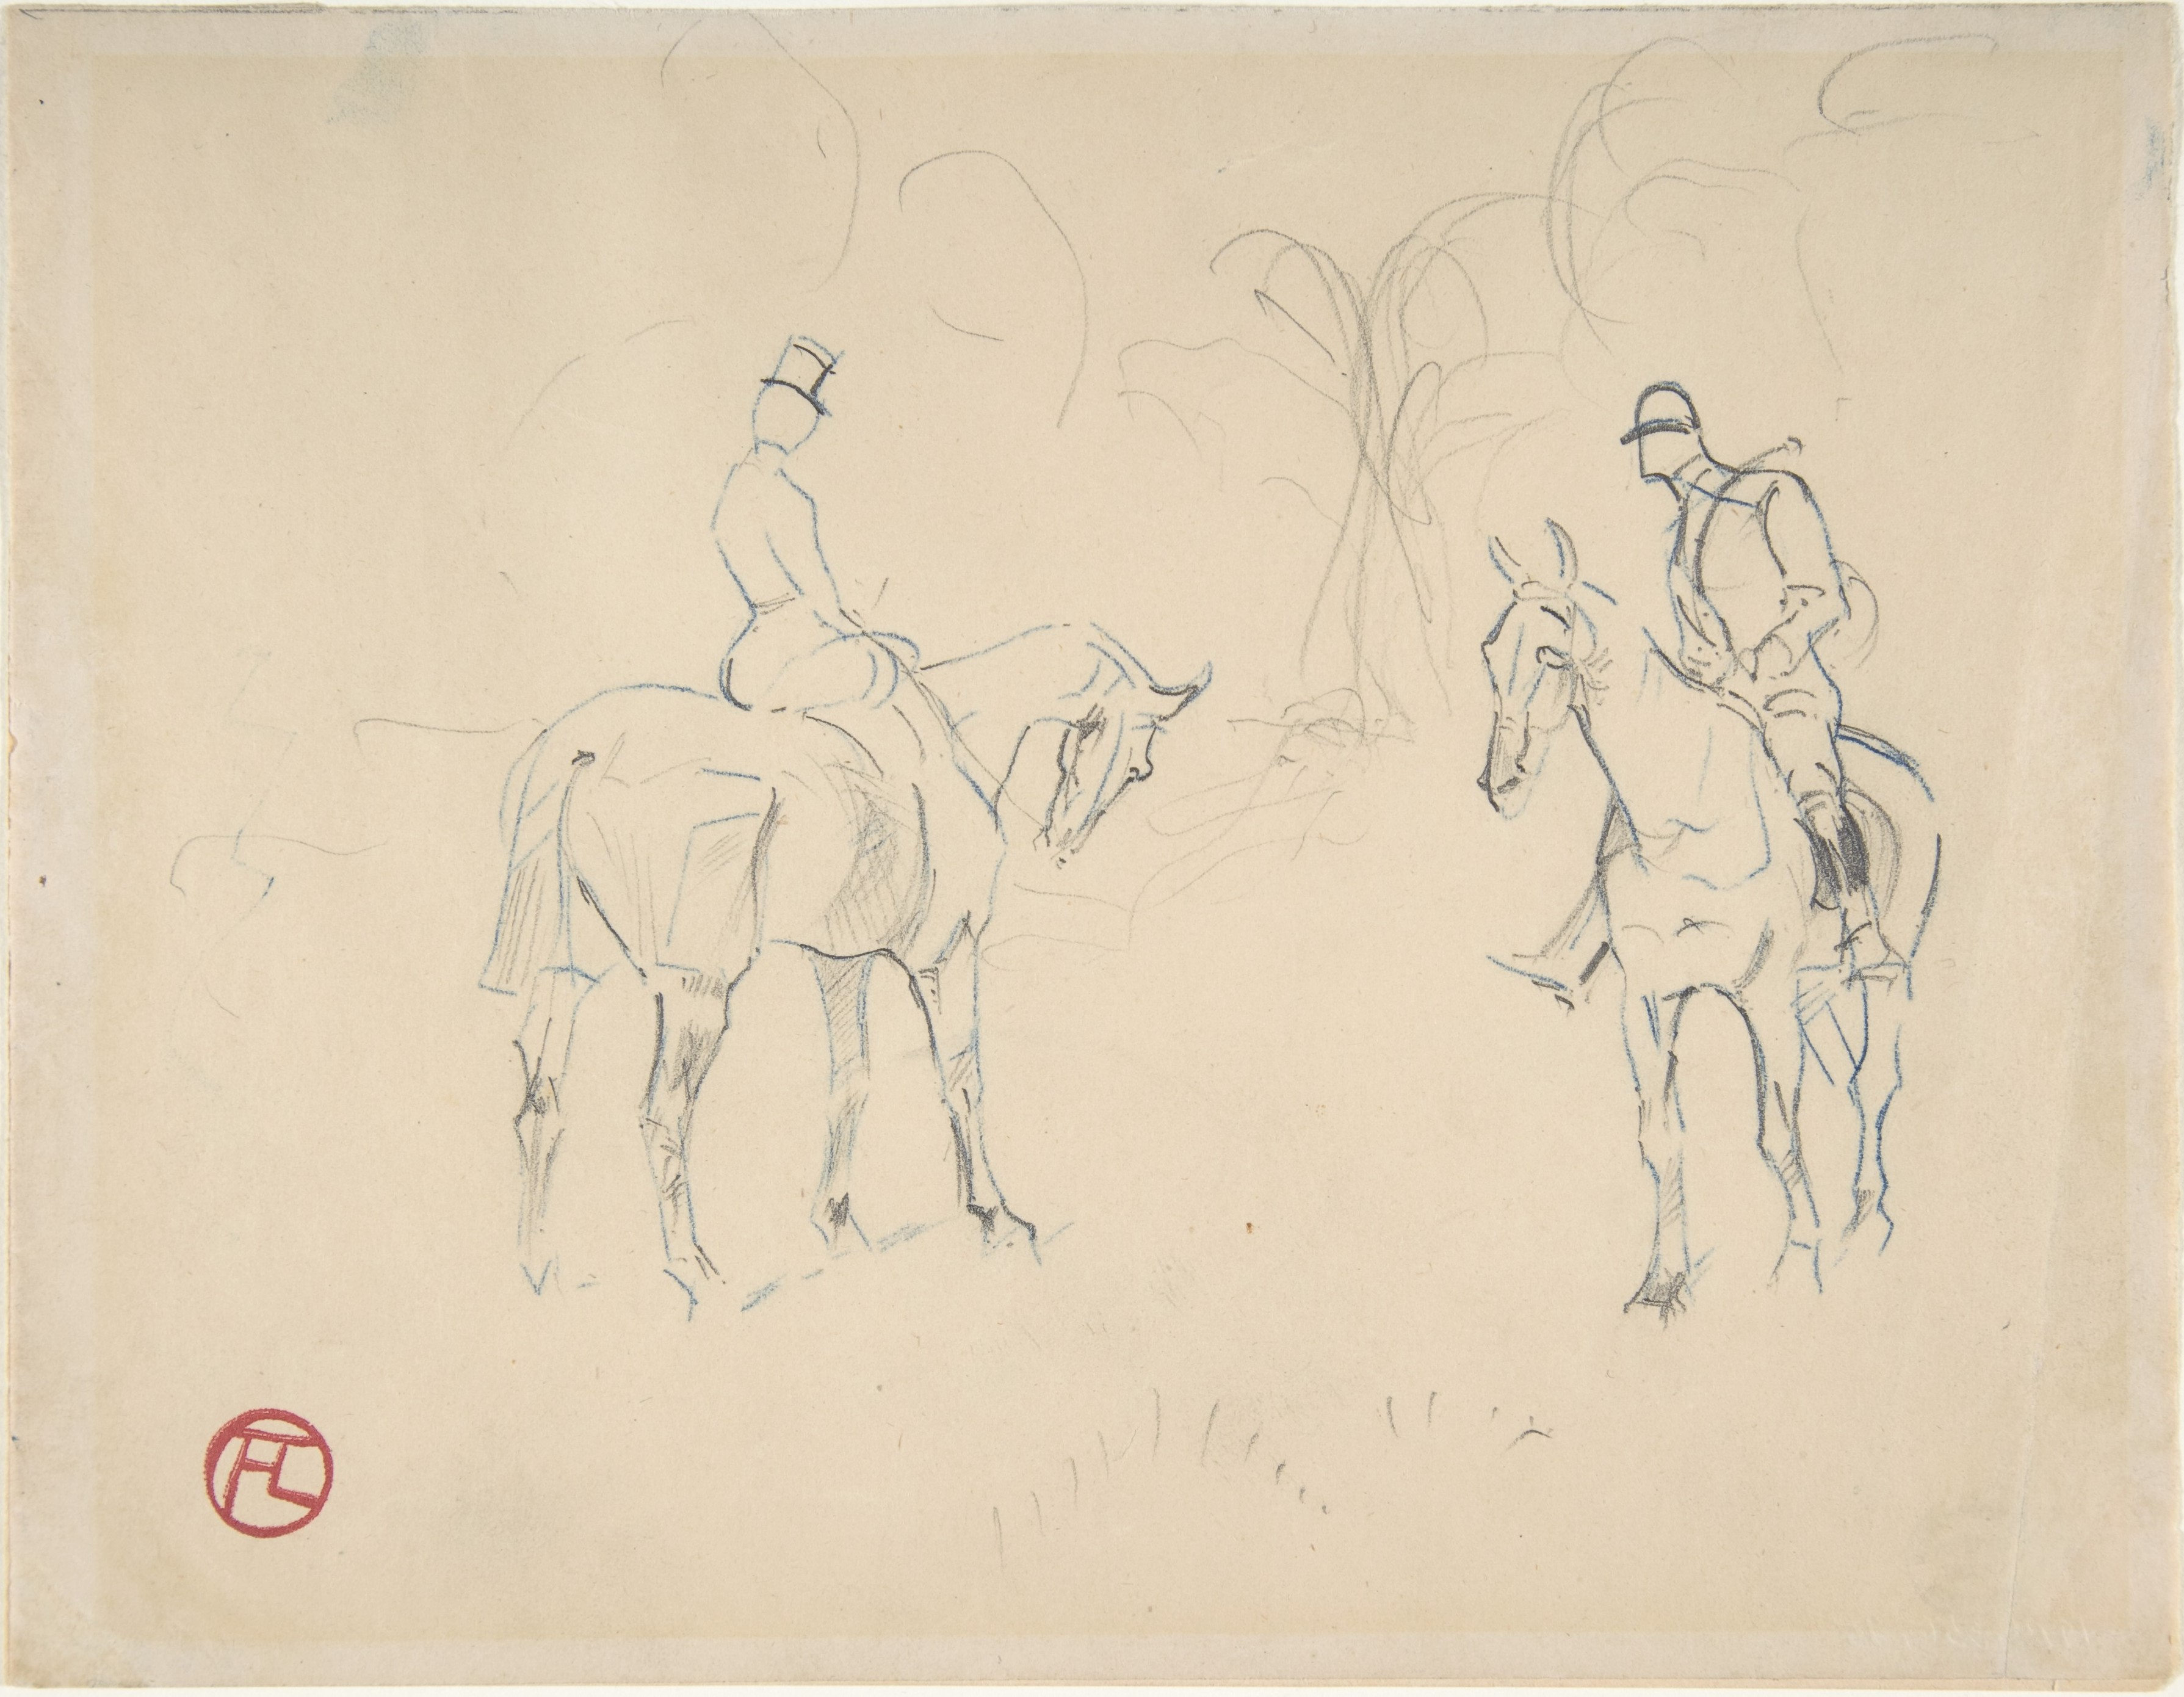 Henri de Toulouse-Lautrec (French, 1864–1901), A Woman and a Man on Horseback, 1879–81. Blue crayon, graphite. The Metropolitan Museum of Art, The Lesley and Emma Sheafer Collection, Bequest of Emma A. Sheafer, 1974.